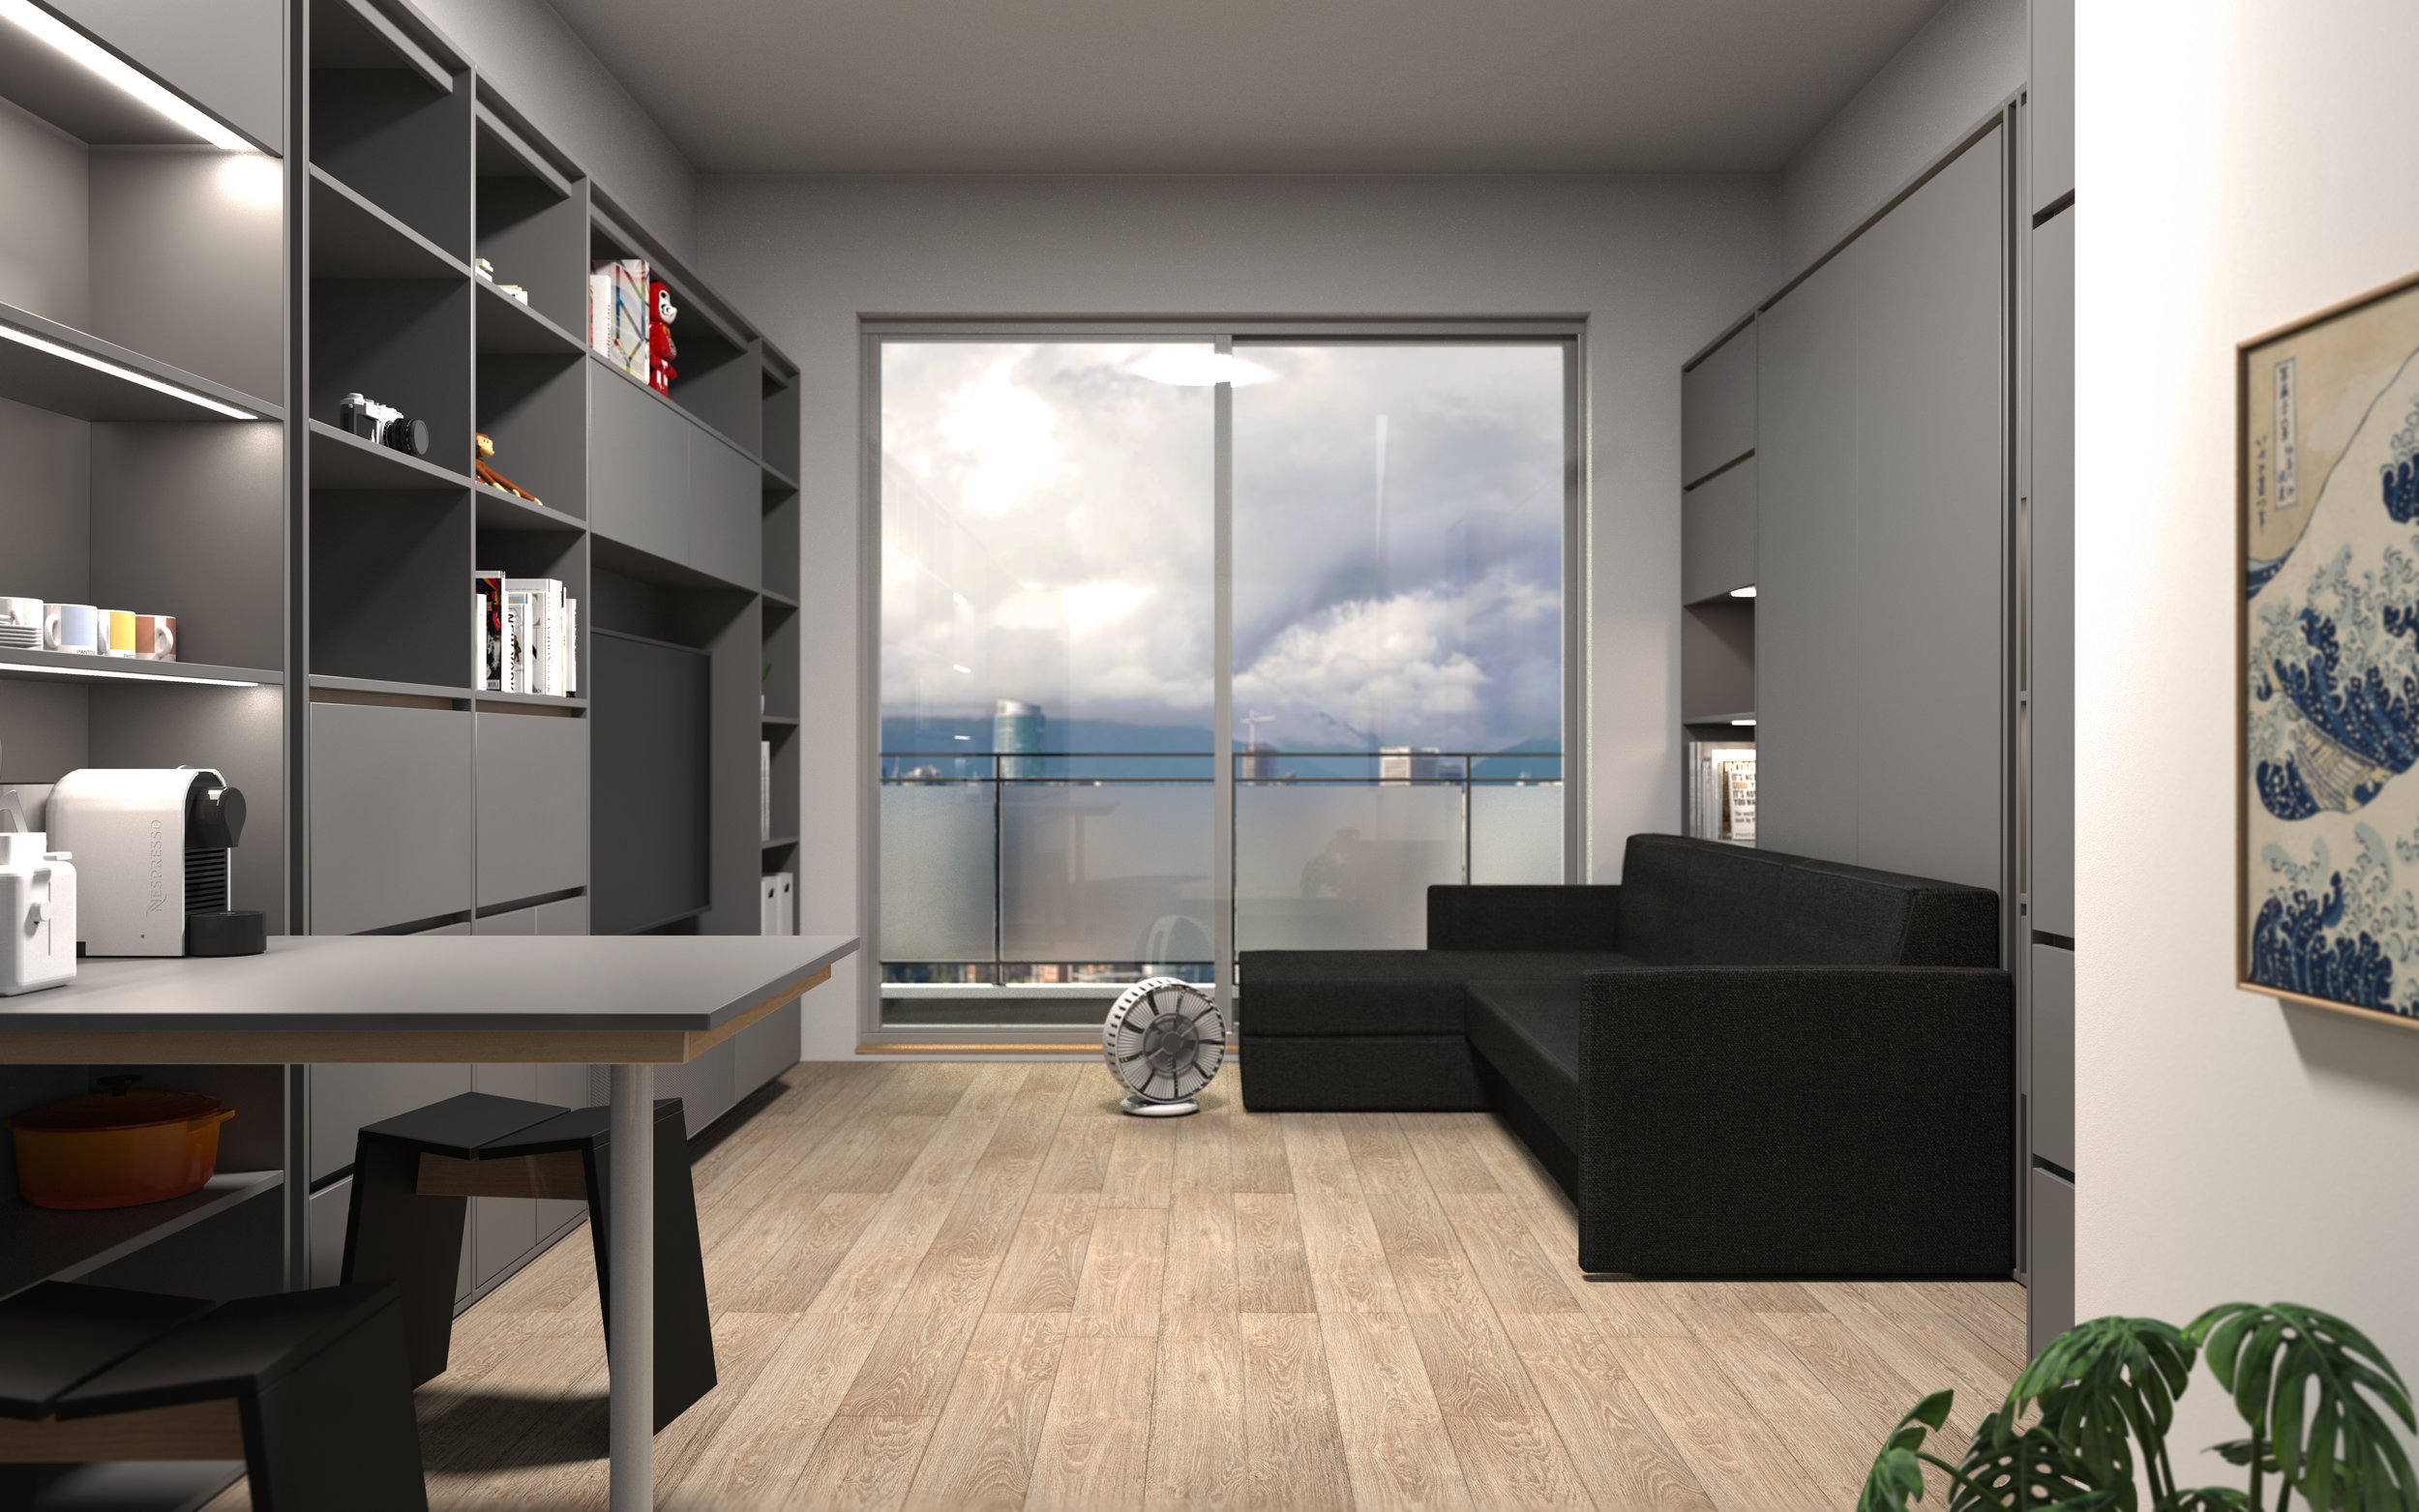 Small space solution interior design built in millwork walled Murphy bed Vancouver Anthill Nexus.jpg